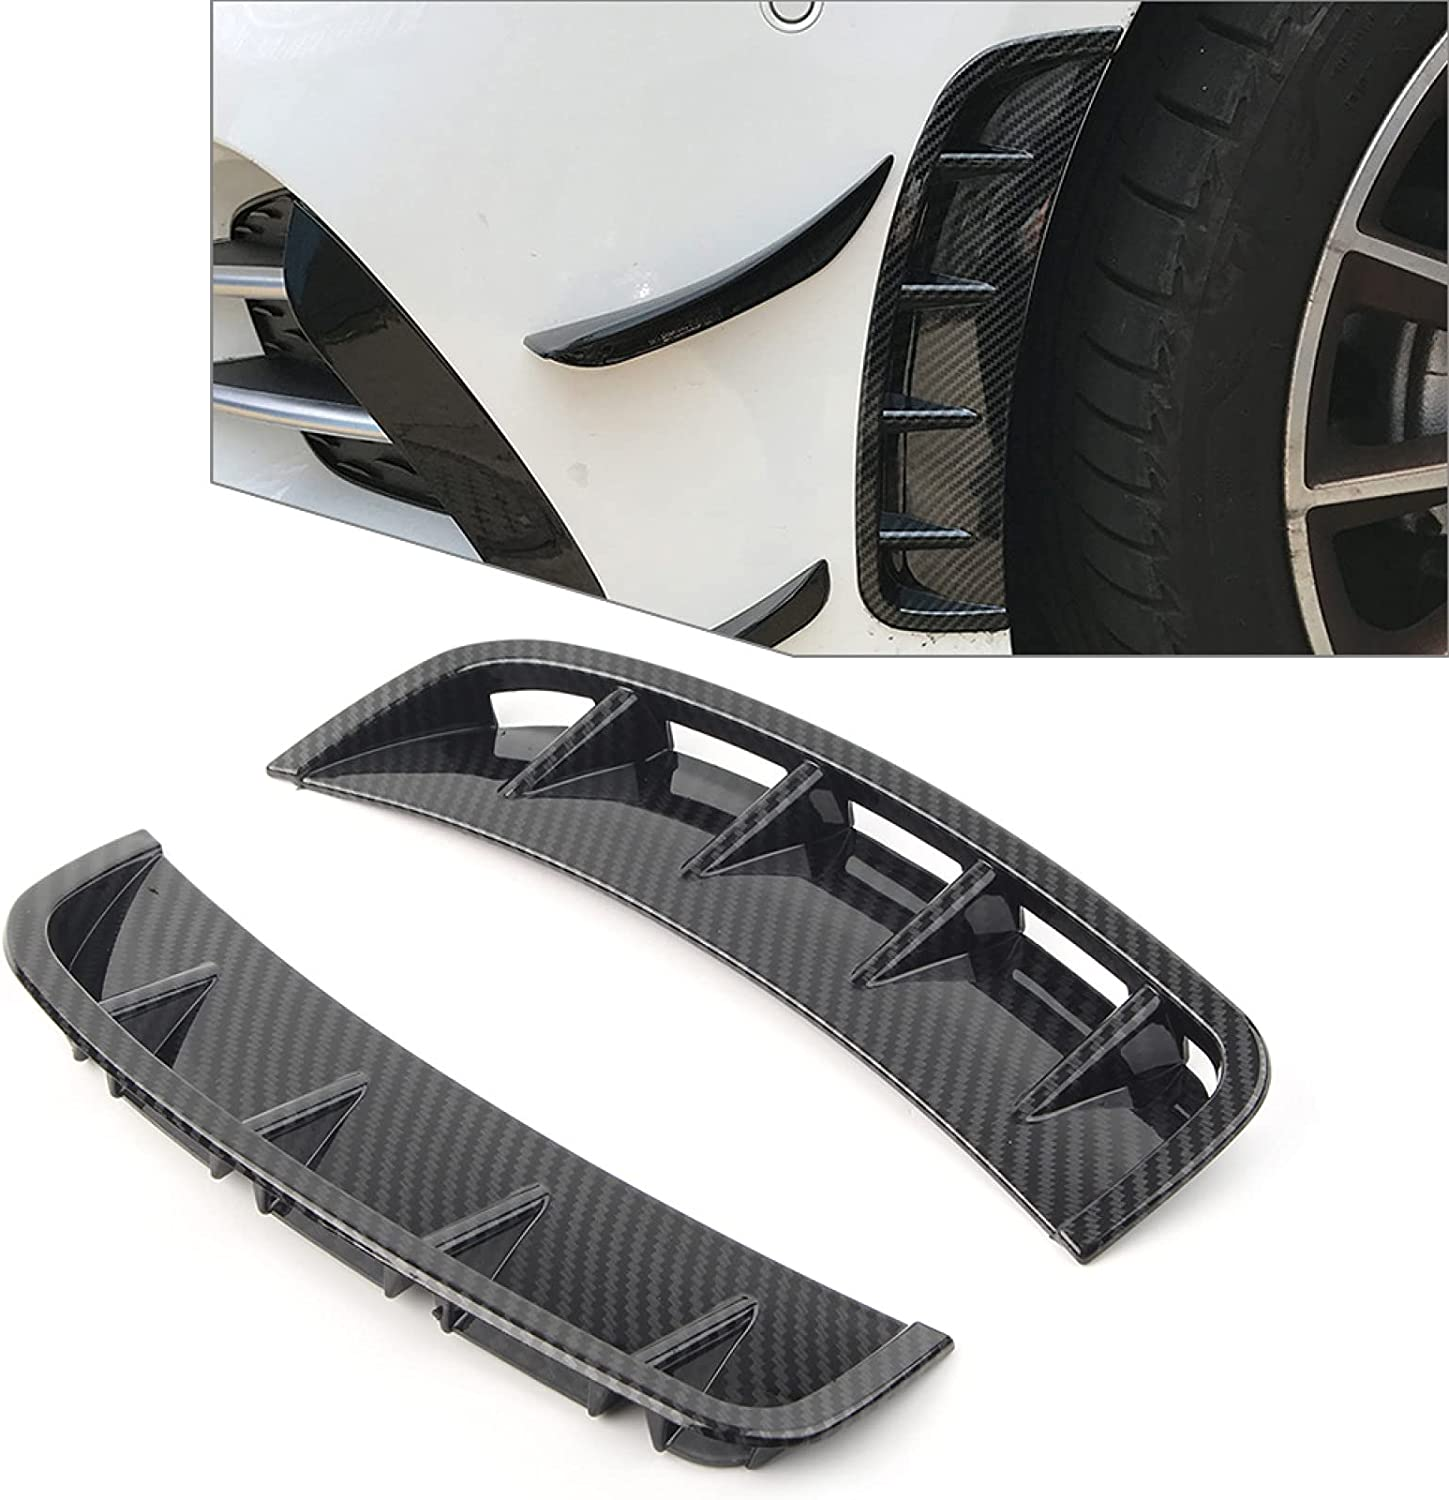 2Pcs 67% OFF of fixed price ABS Car Front Wheel Air Vent Ben Fender Decor for Trim Hood Max 83% OFF